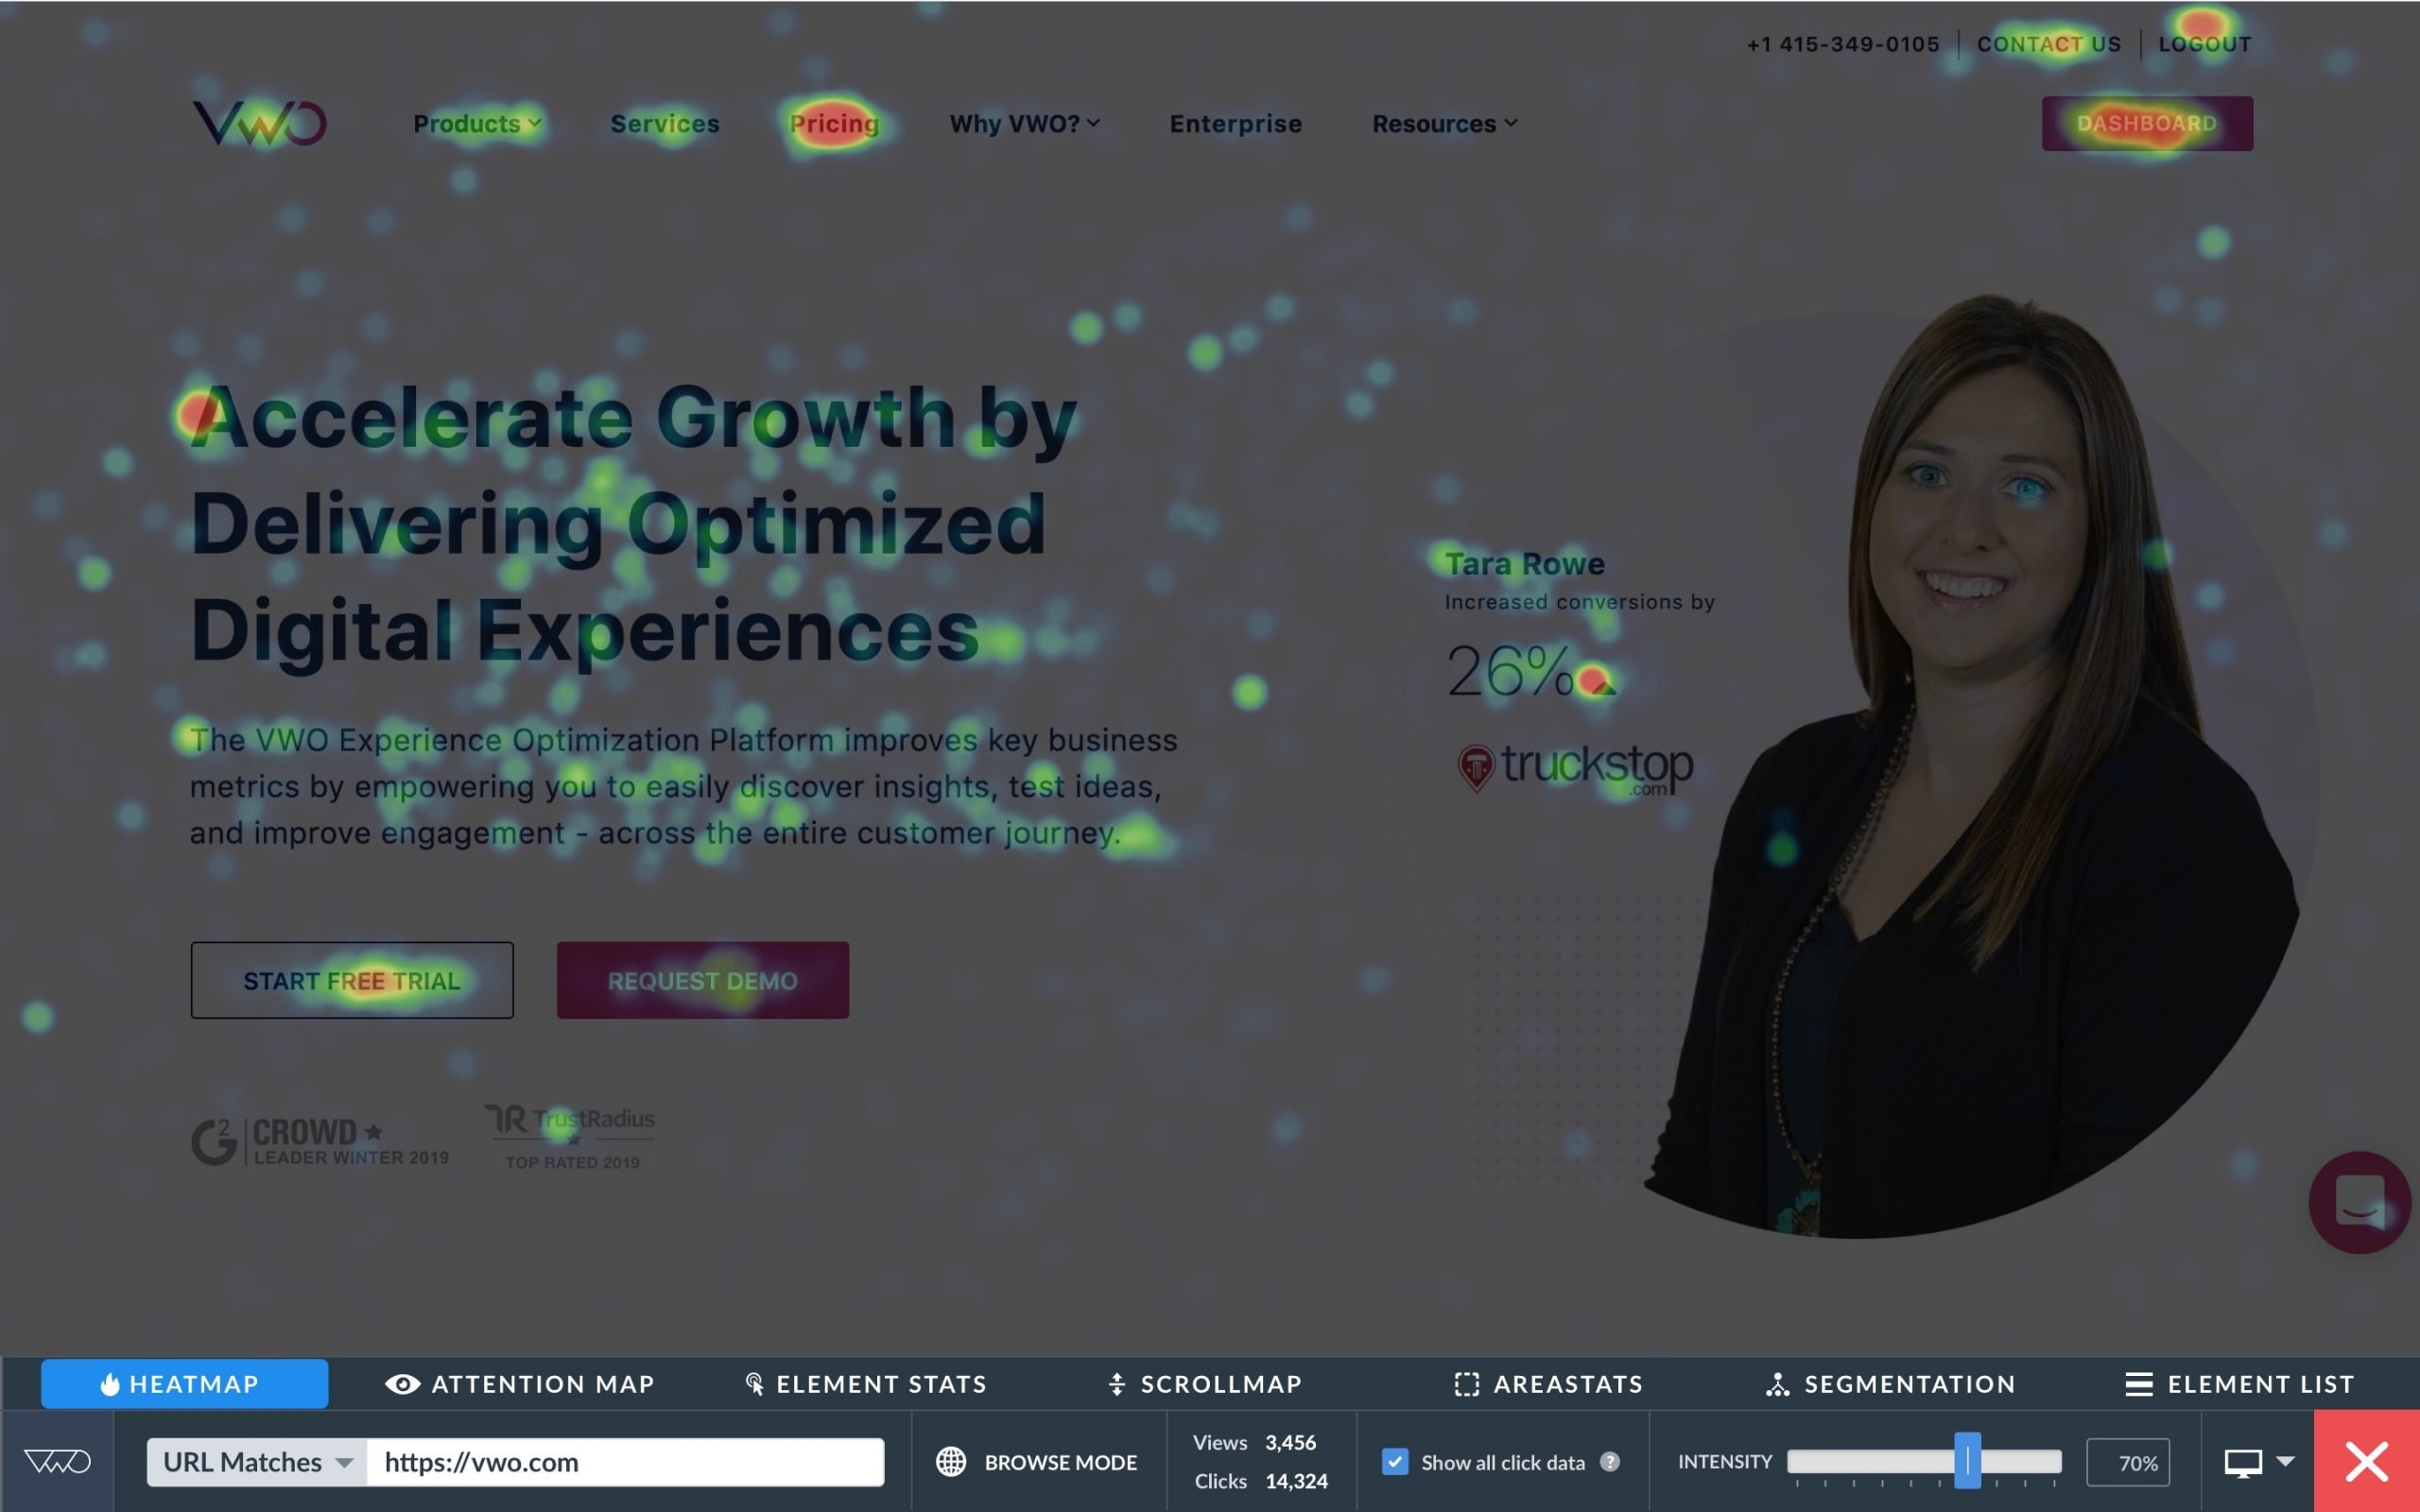 screenshot of the heatmap of VWO.com's home page